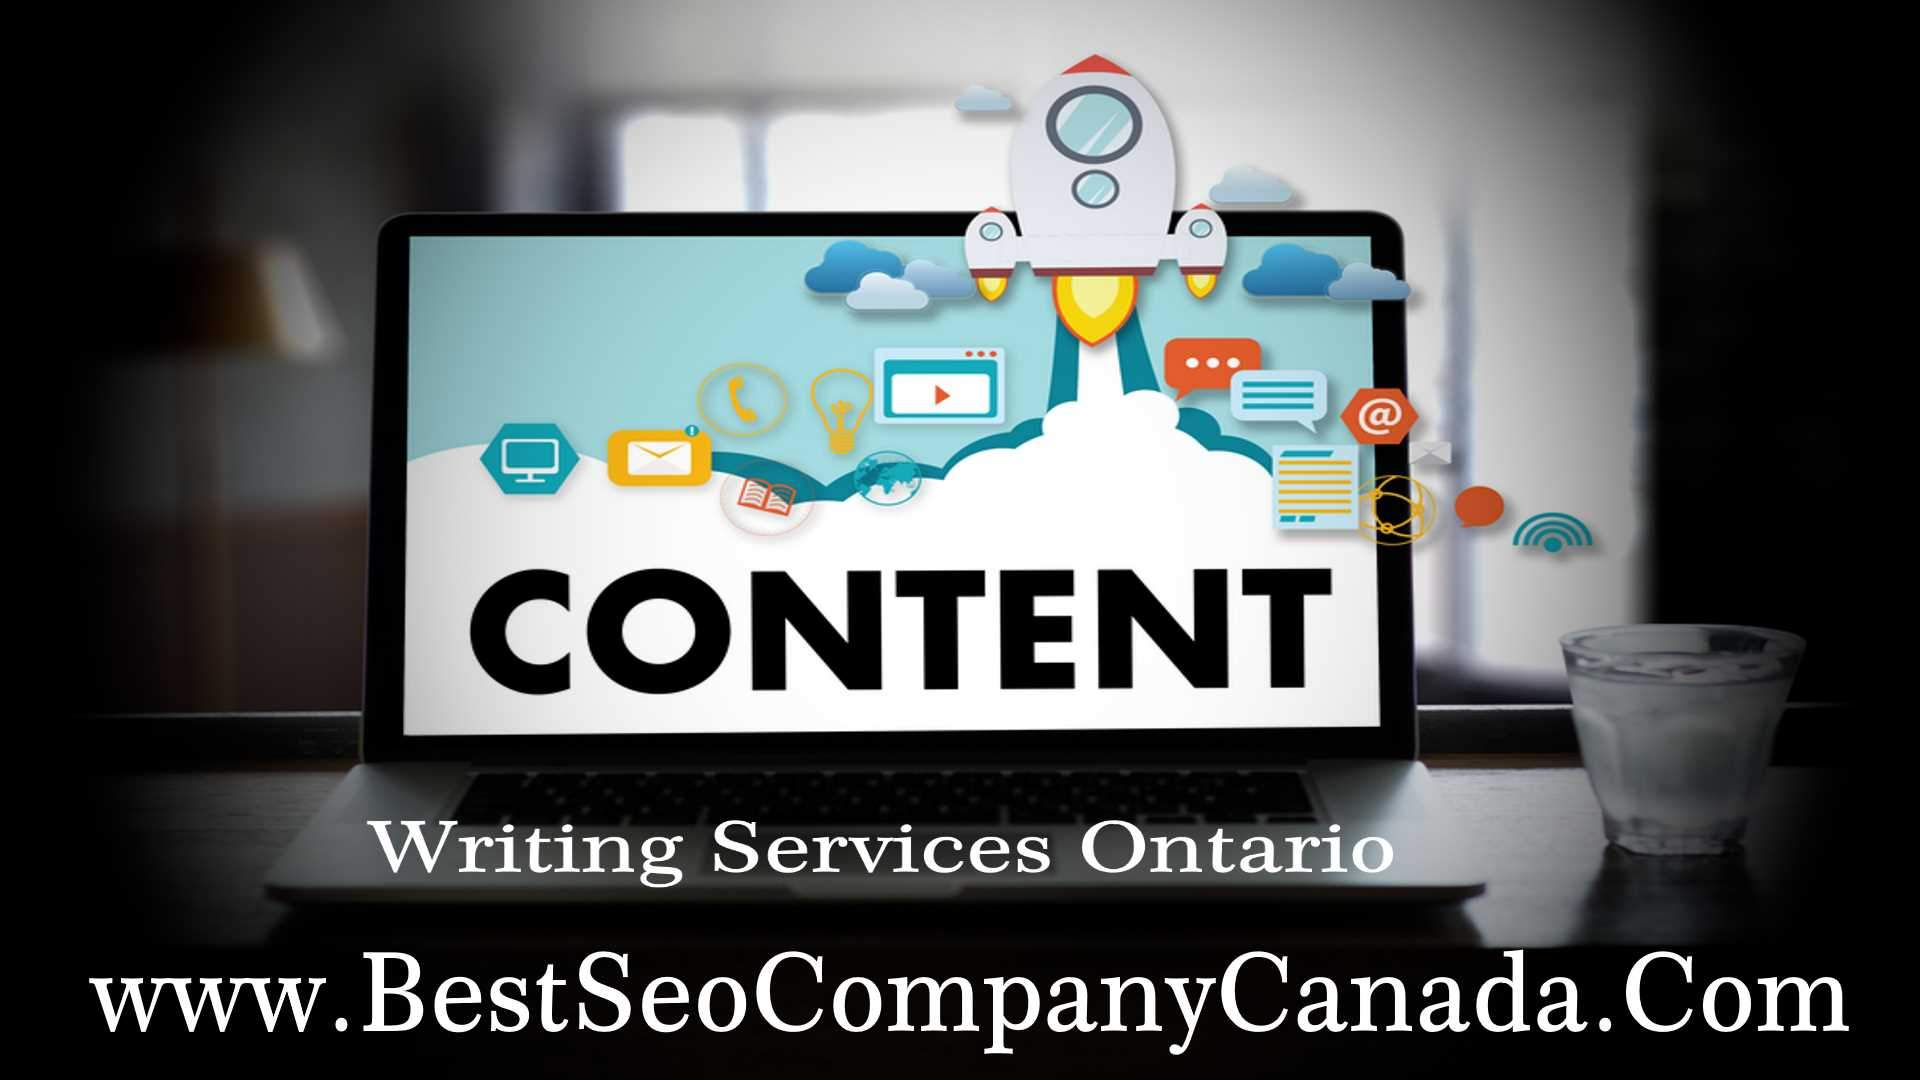 Professional content writing services in Ontario